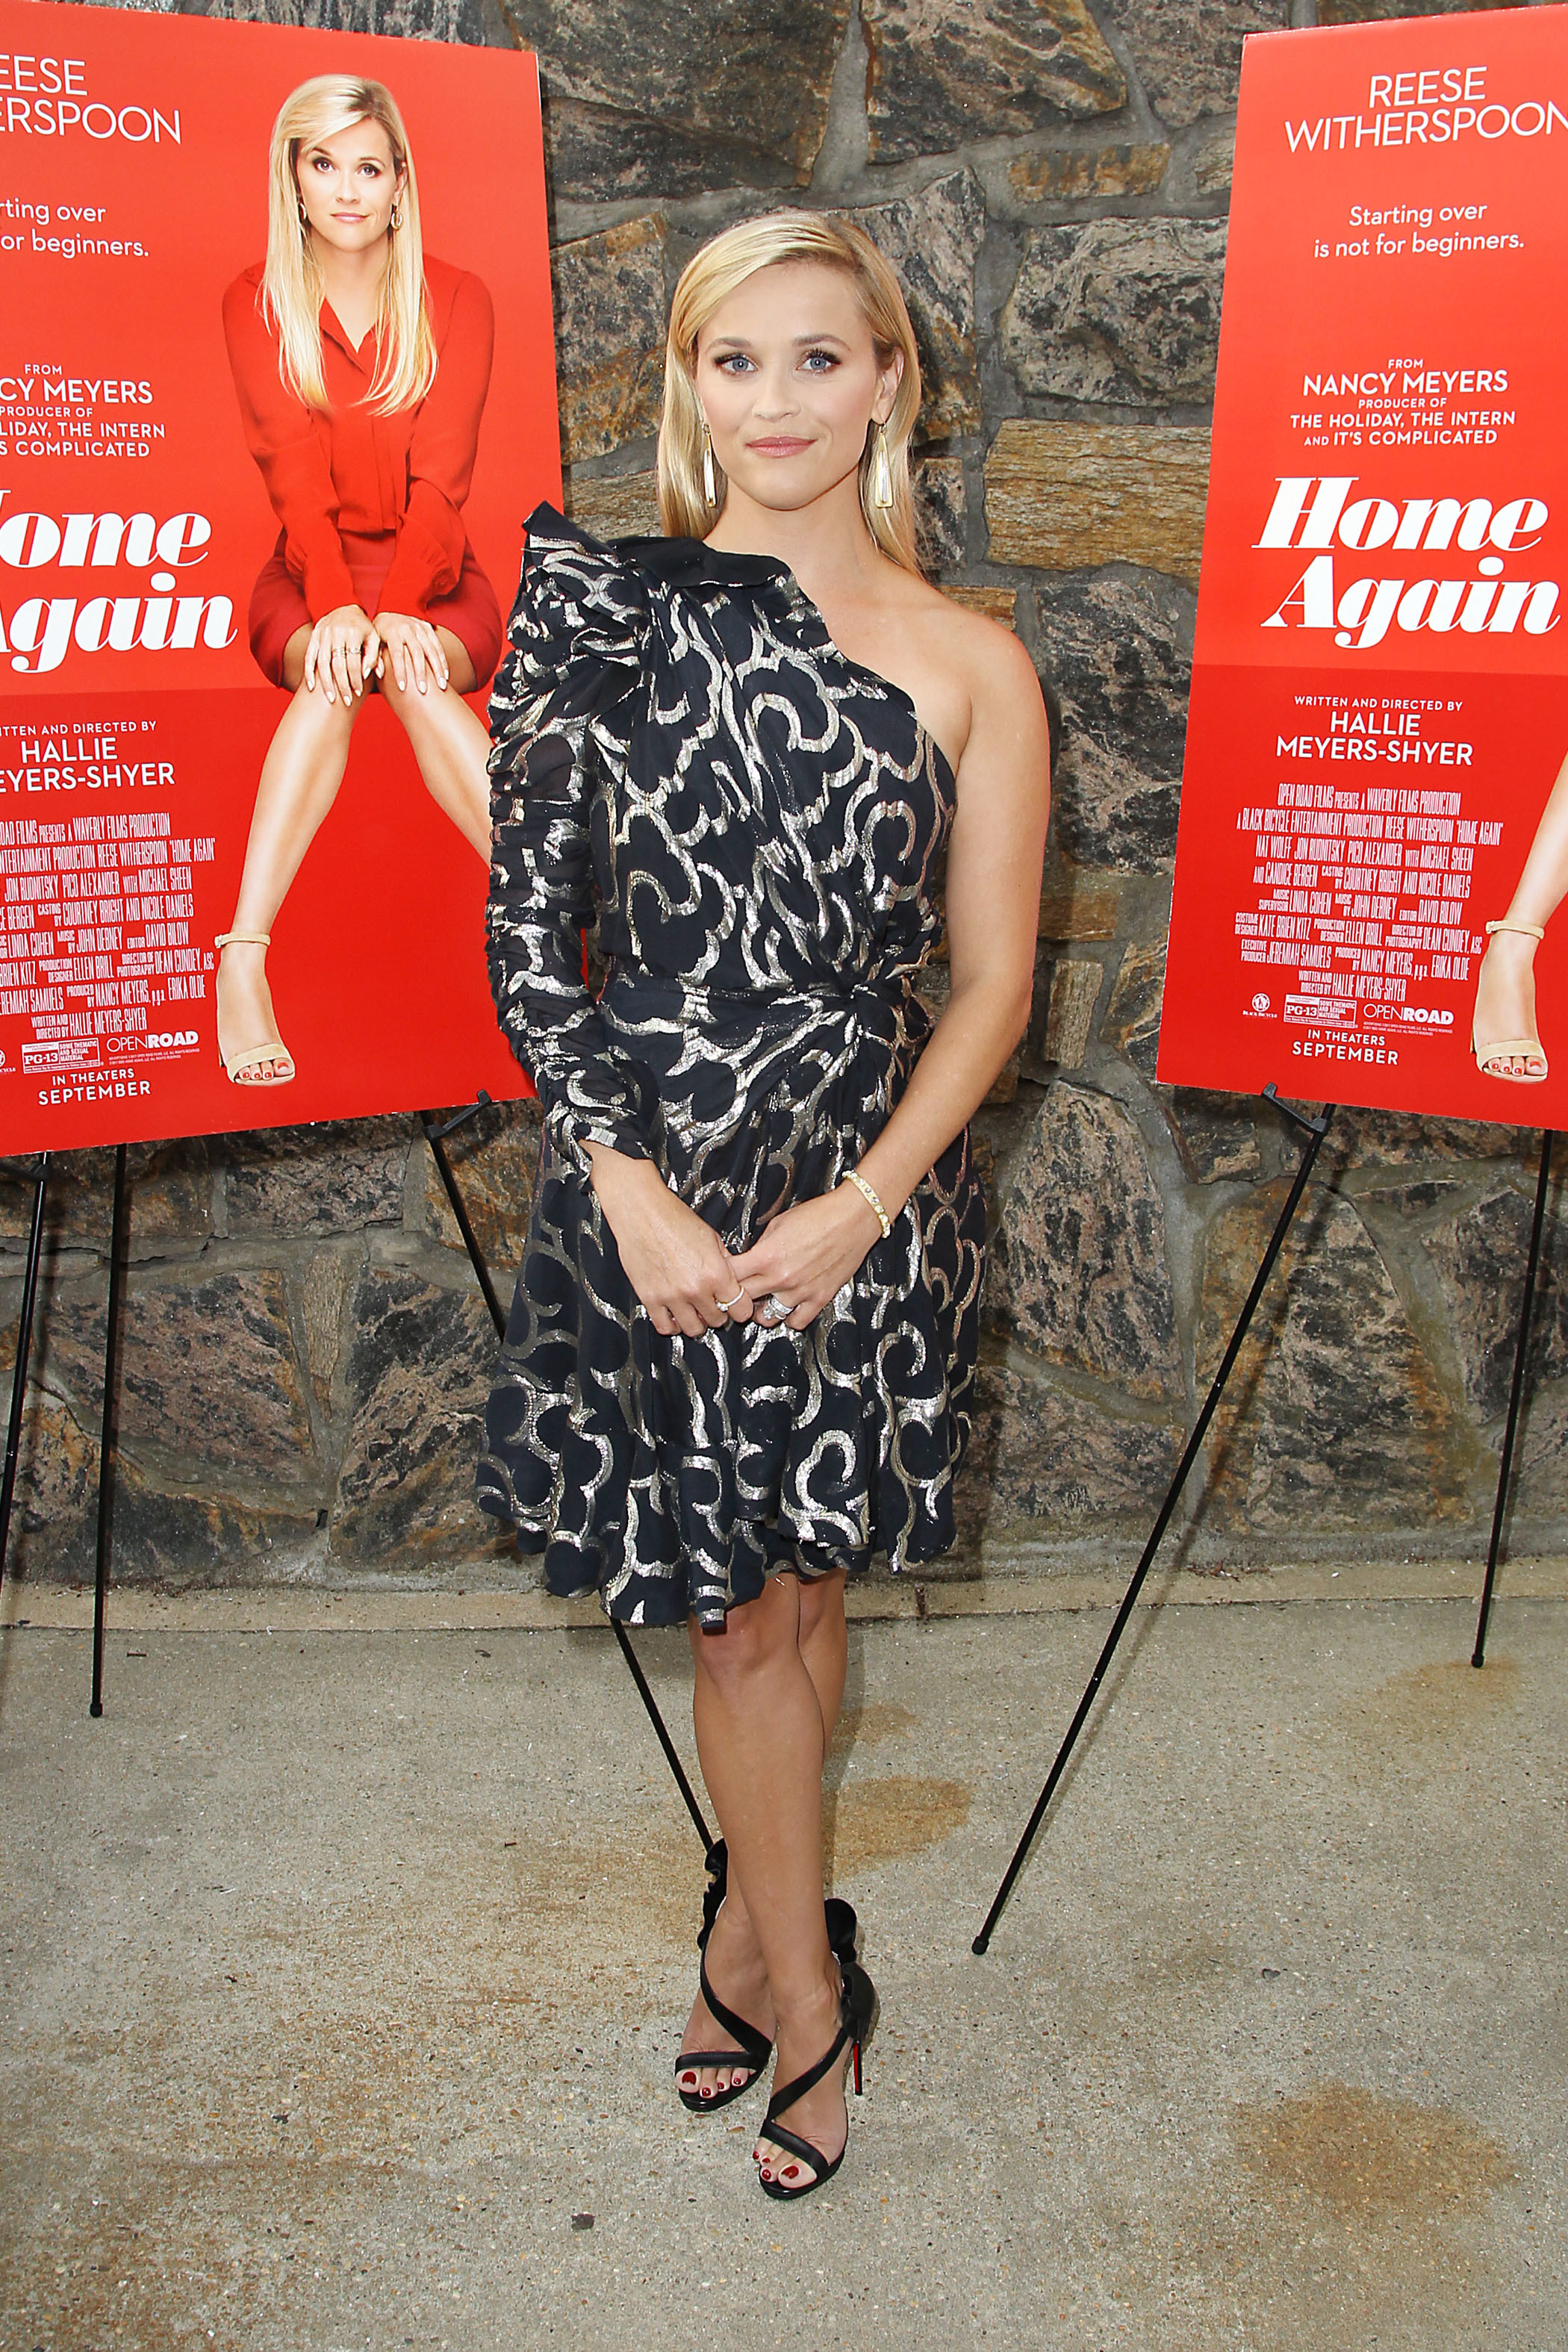 """Reese Witherspoon attends the screening of """"Home Again"""" in East Hampton on Aug. 19, 2017."""